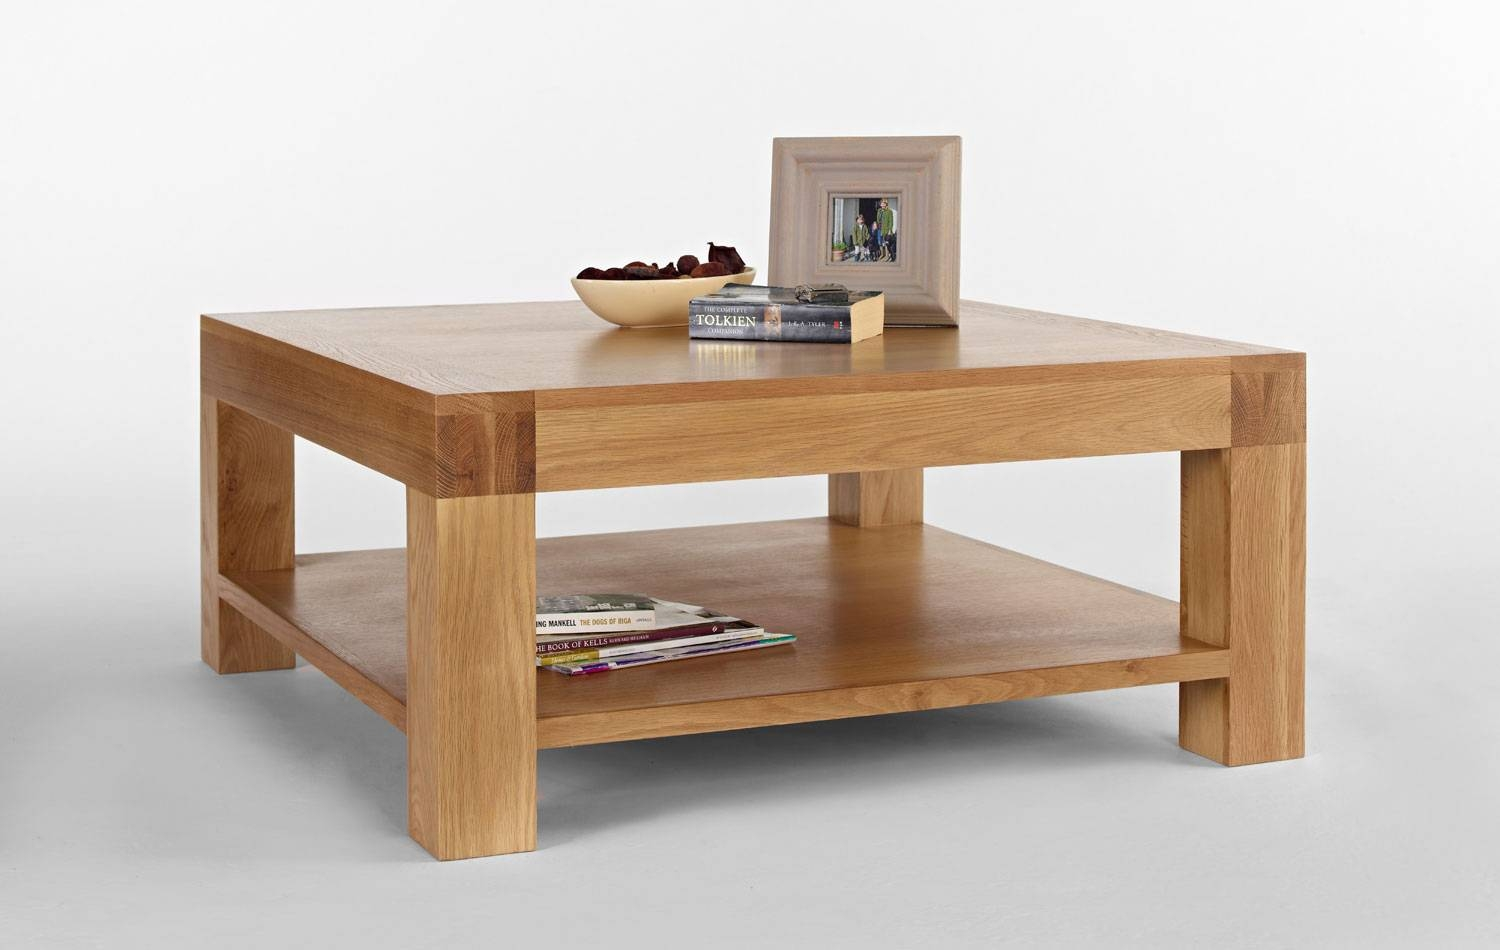 Square Light Oak Coffee Table - Light Santana Oak pertaining to Light Oak Coffee Tables (Image 12 of 15)